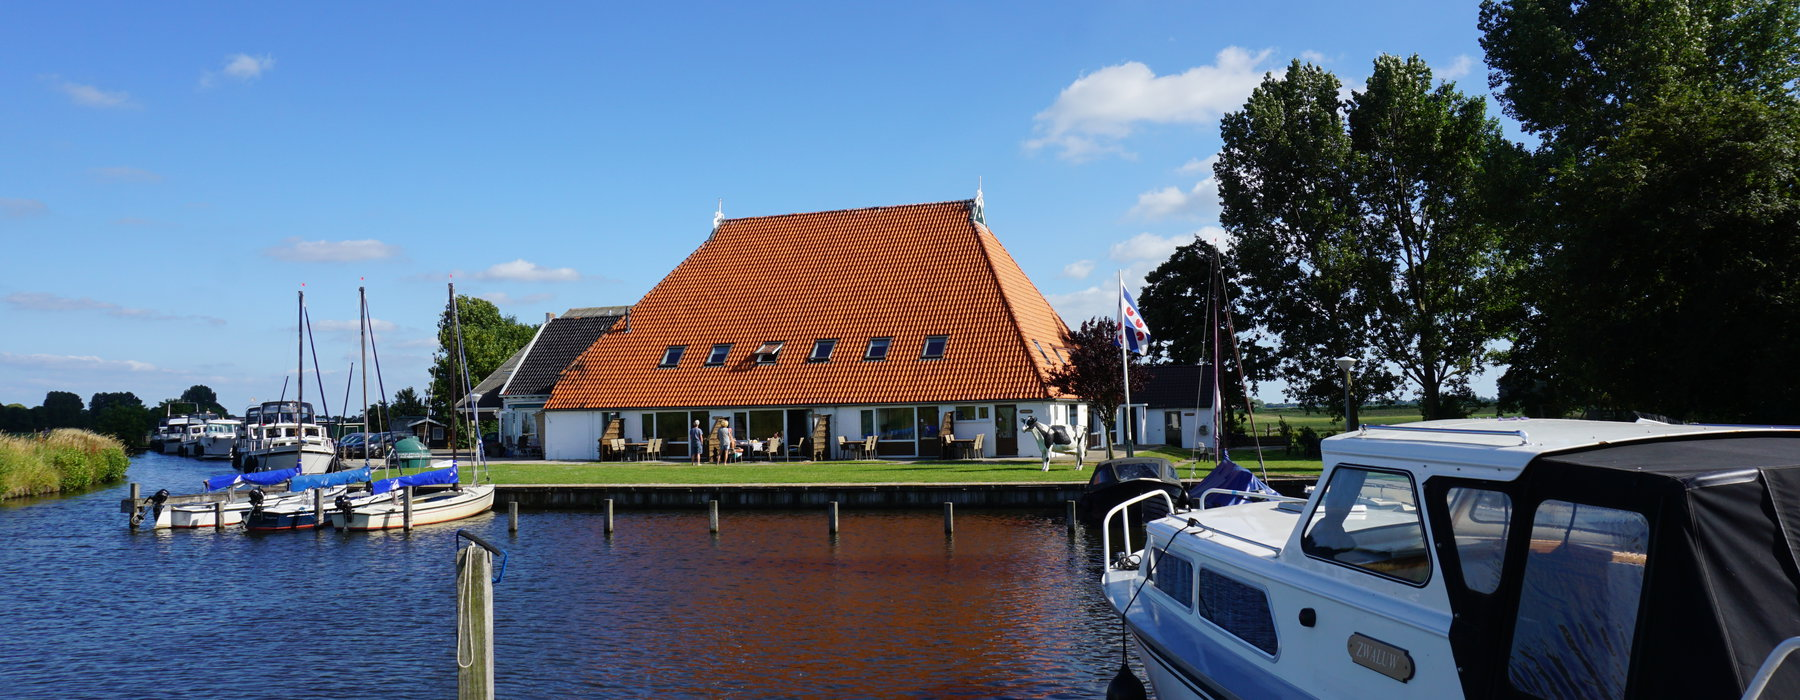 Attractive holiday home rental in Friesland